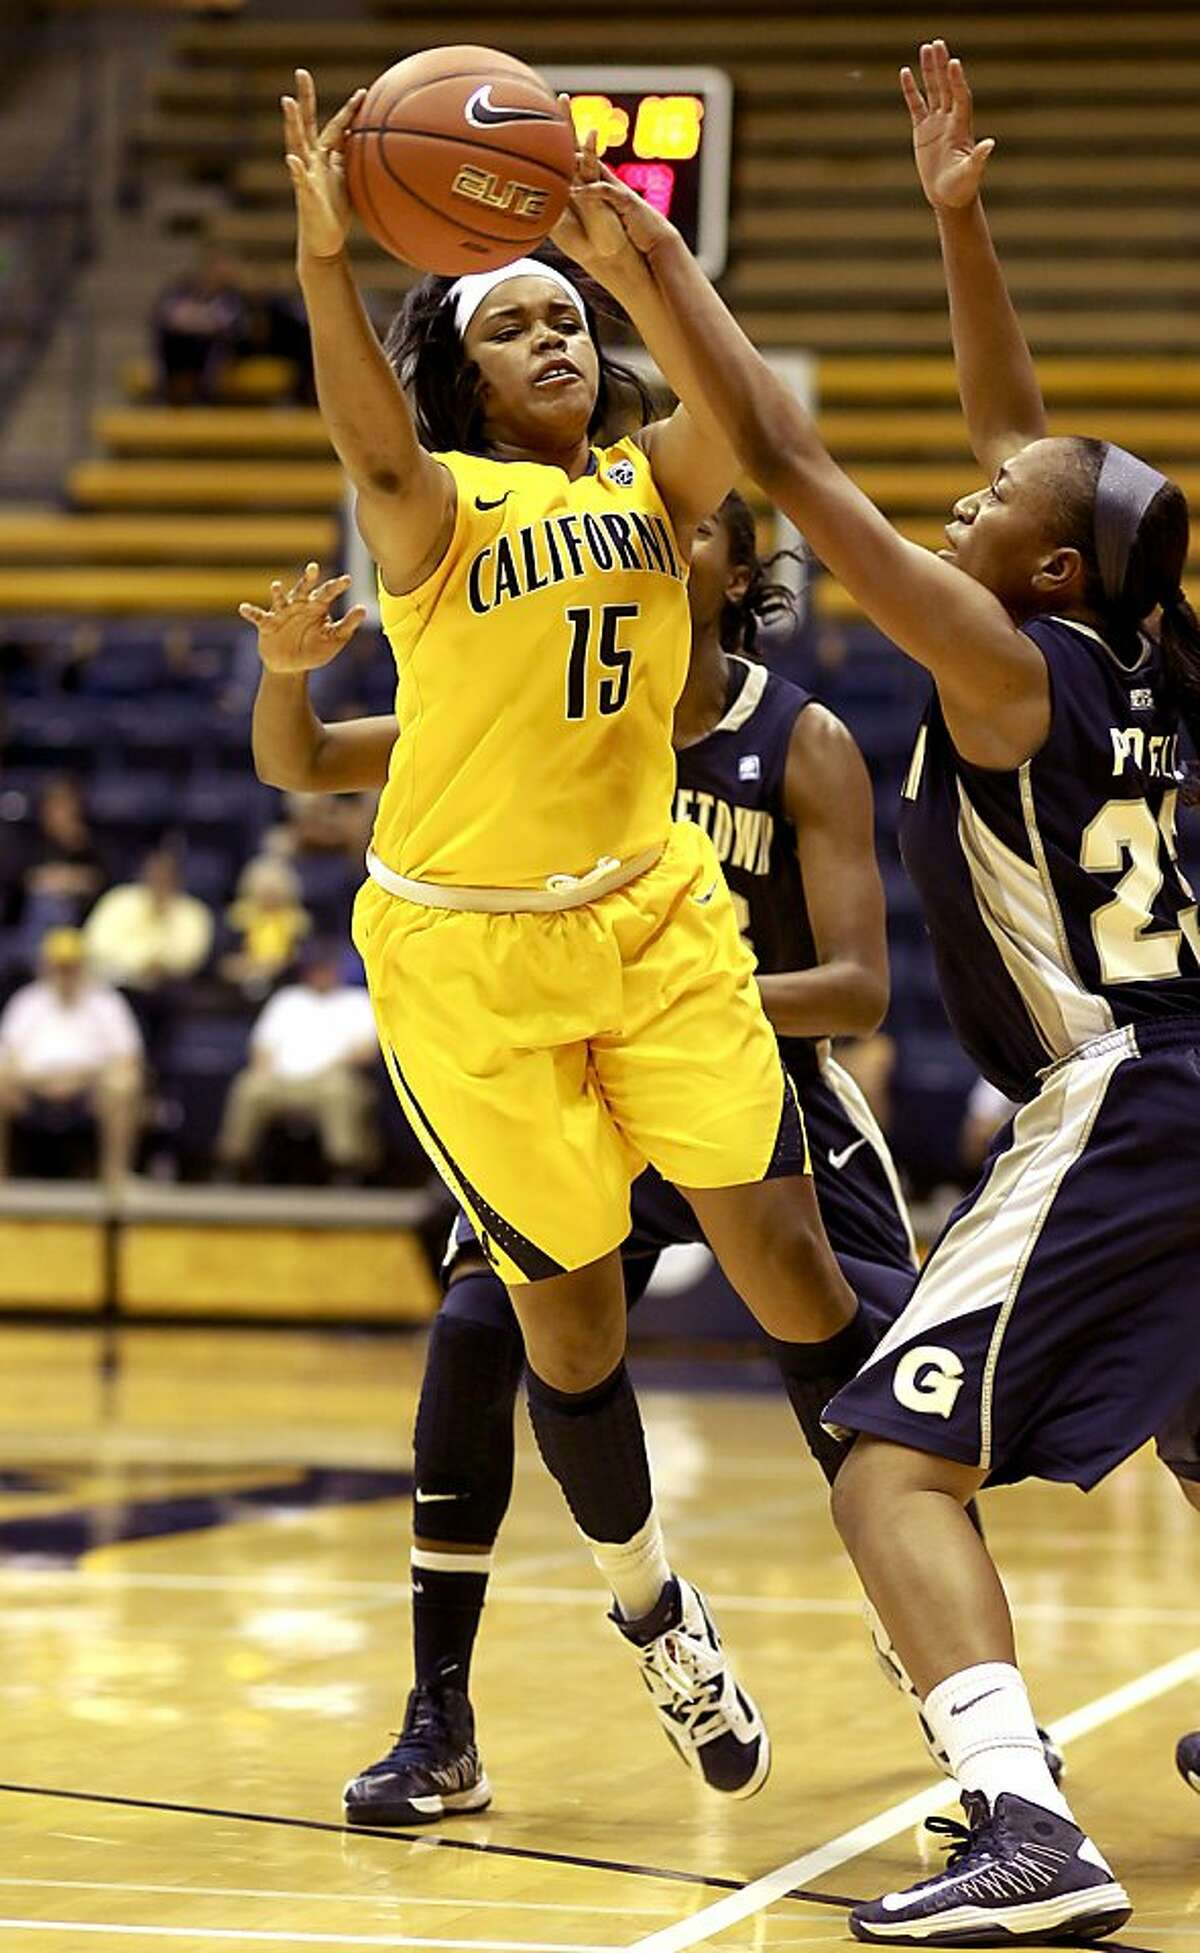 Cal's Brittany Boyd, (15) battles Brittany Horne, (33) and Samisha Powell during the first half, as the California women take on the Georgetown Hoyas in the championship game of the Cal Classic basketball tournament at Haas Pavilion in Berkeley, Calif. on Saturday Nov. 24, 2012.